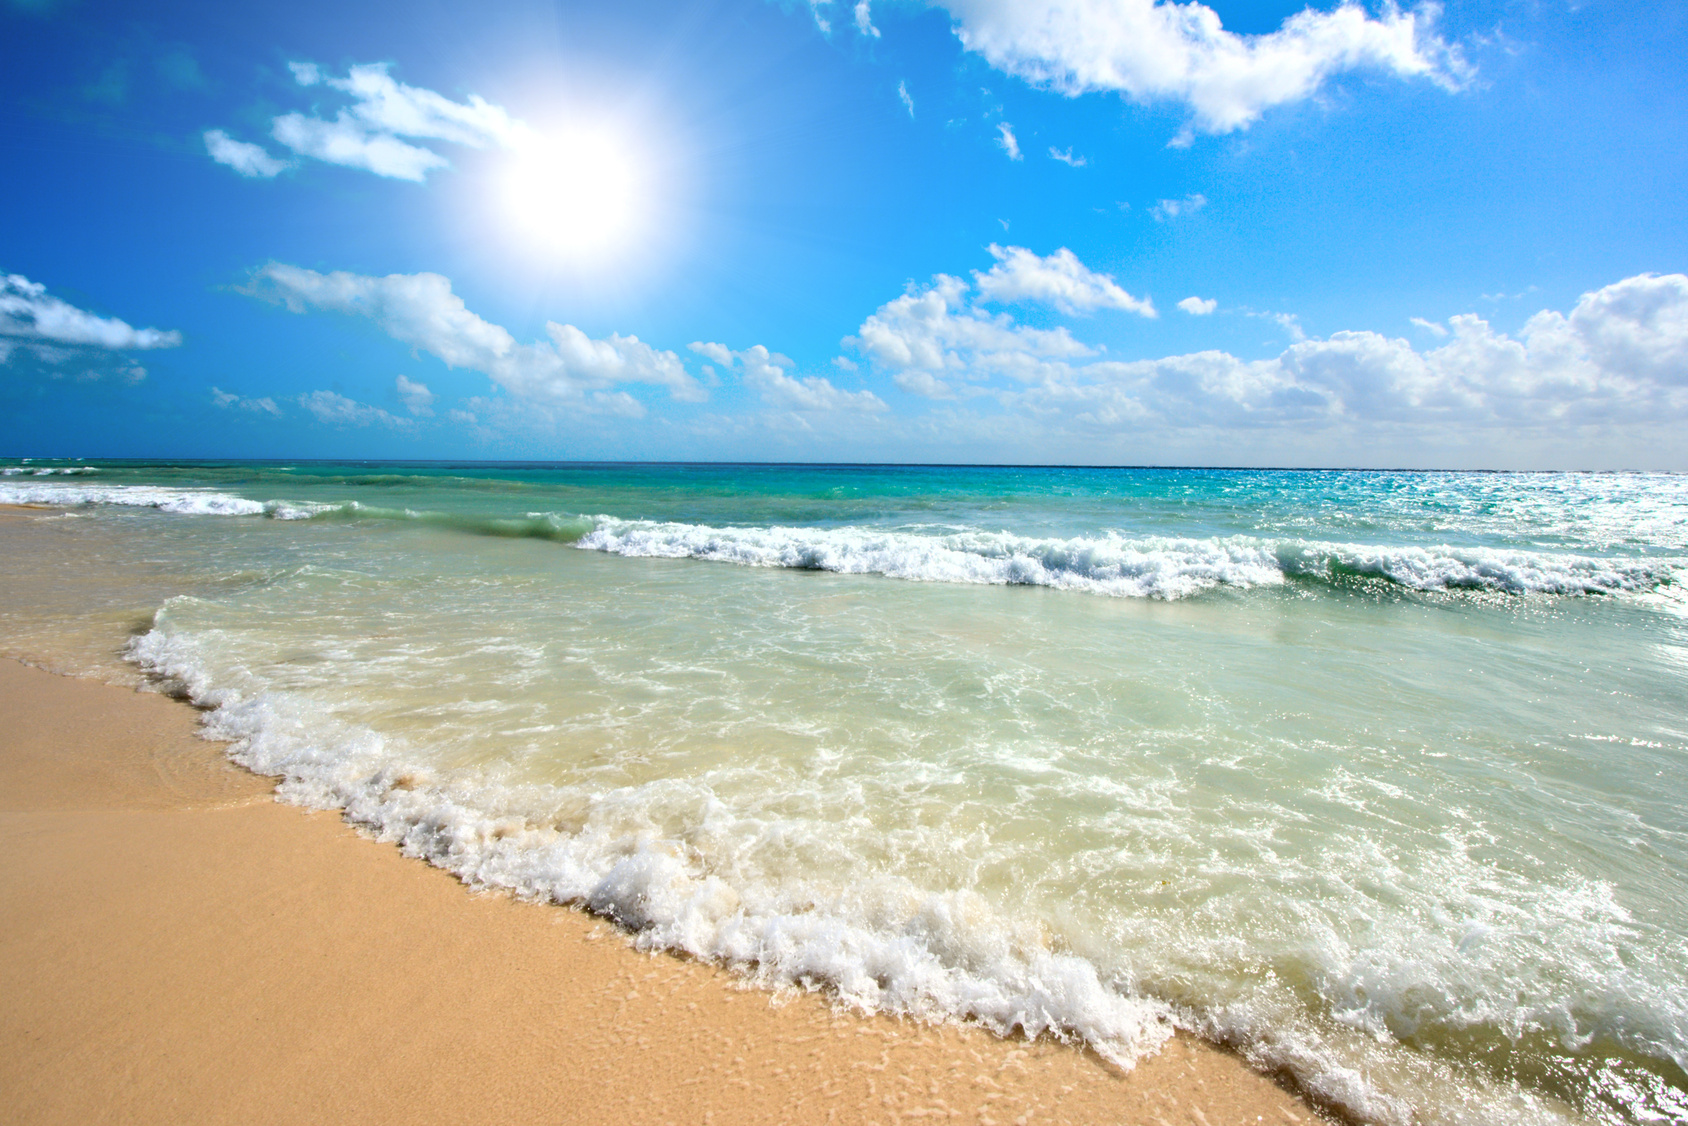 Pictures of Sunny Beach in Mexico